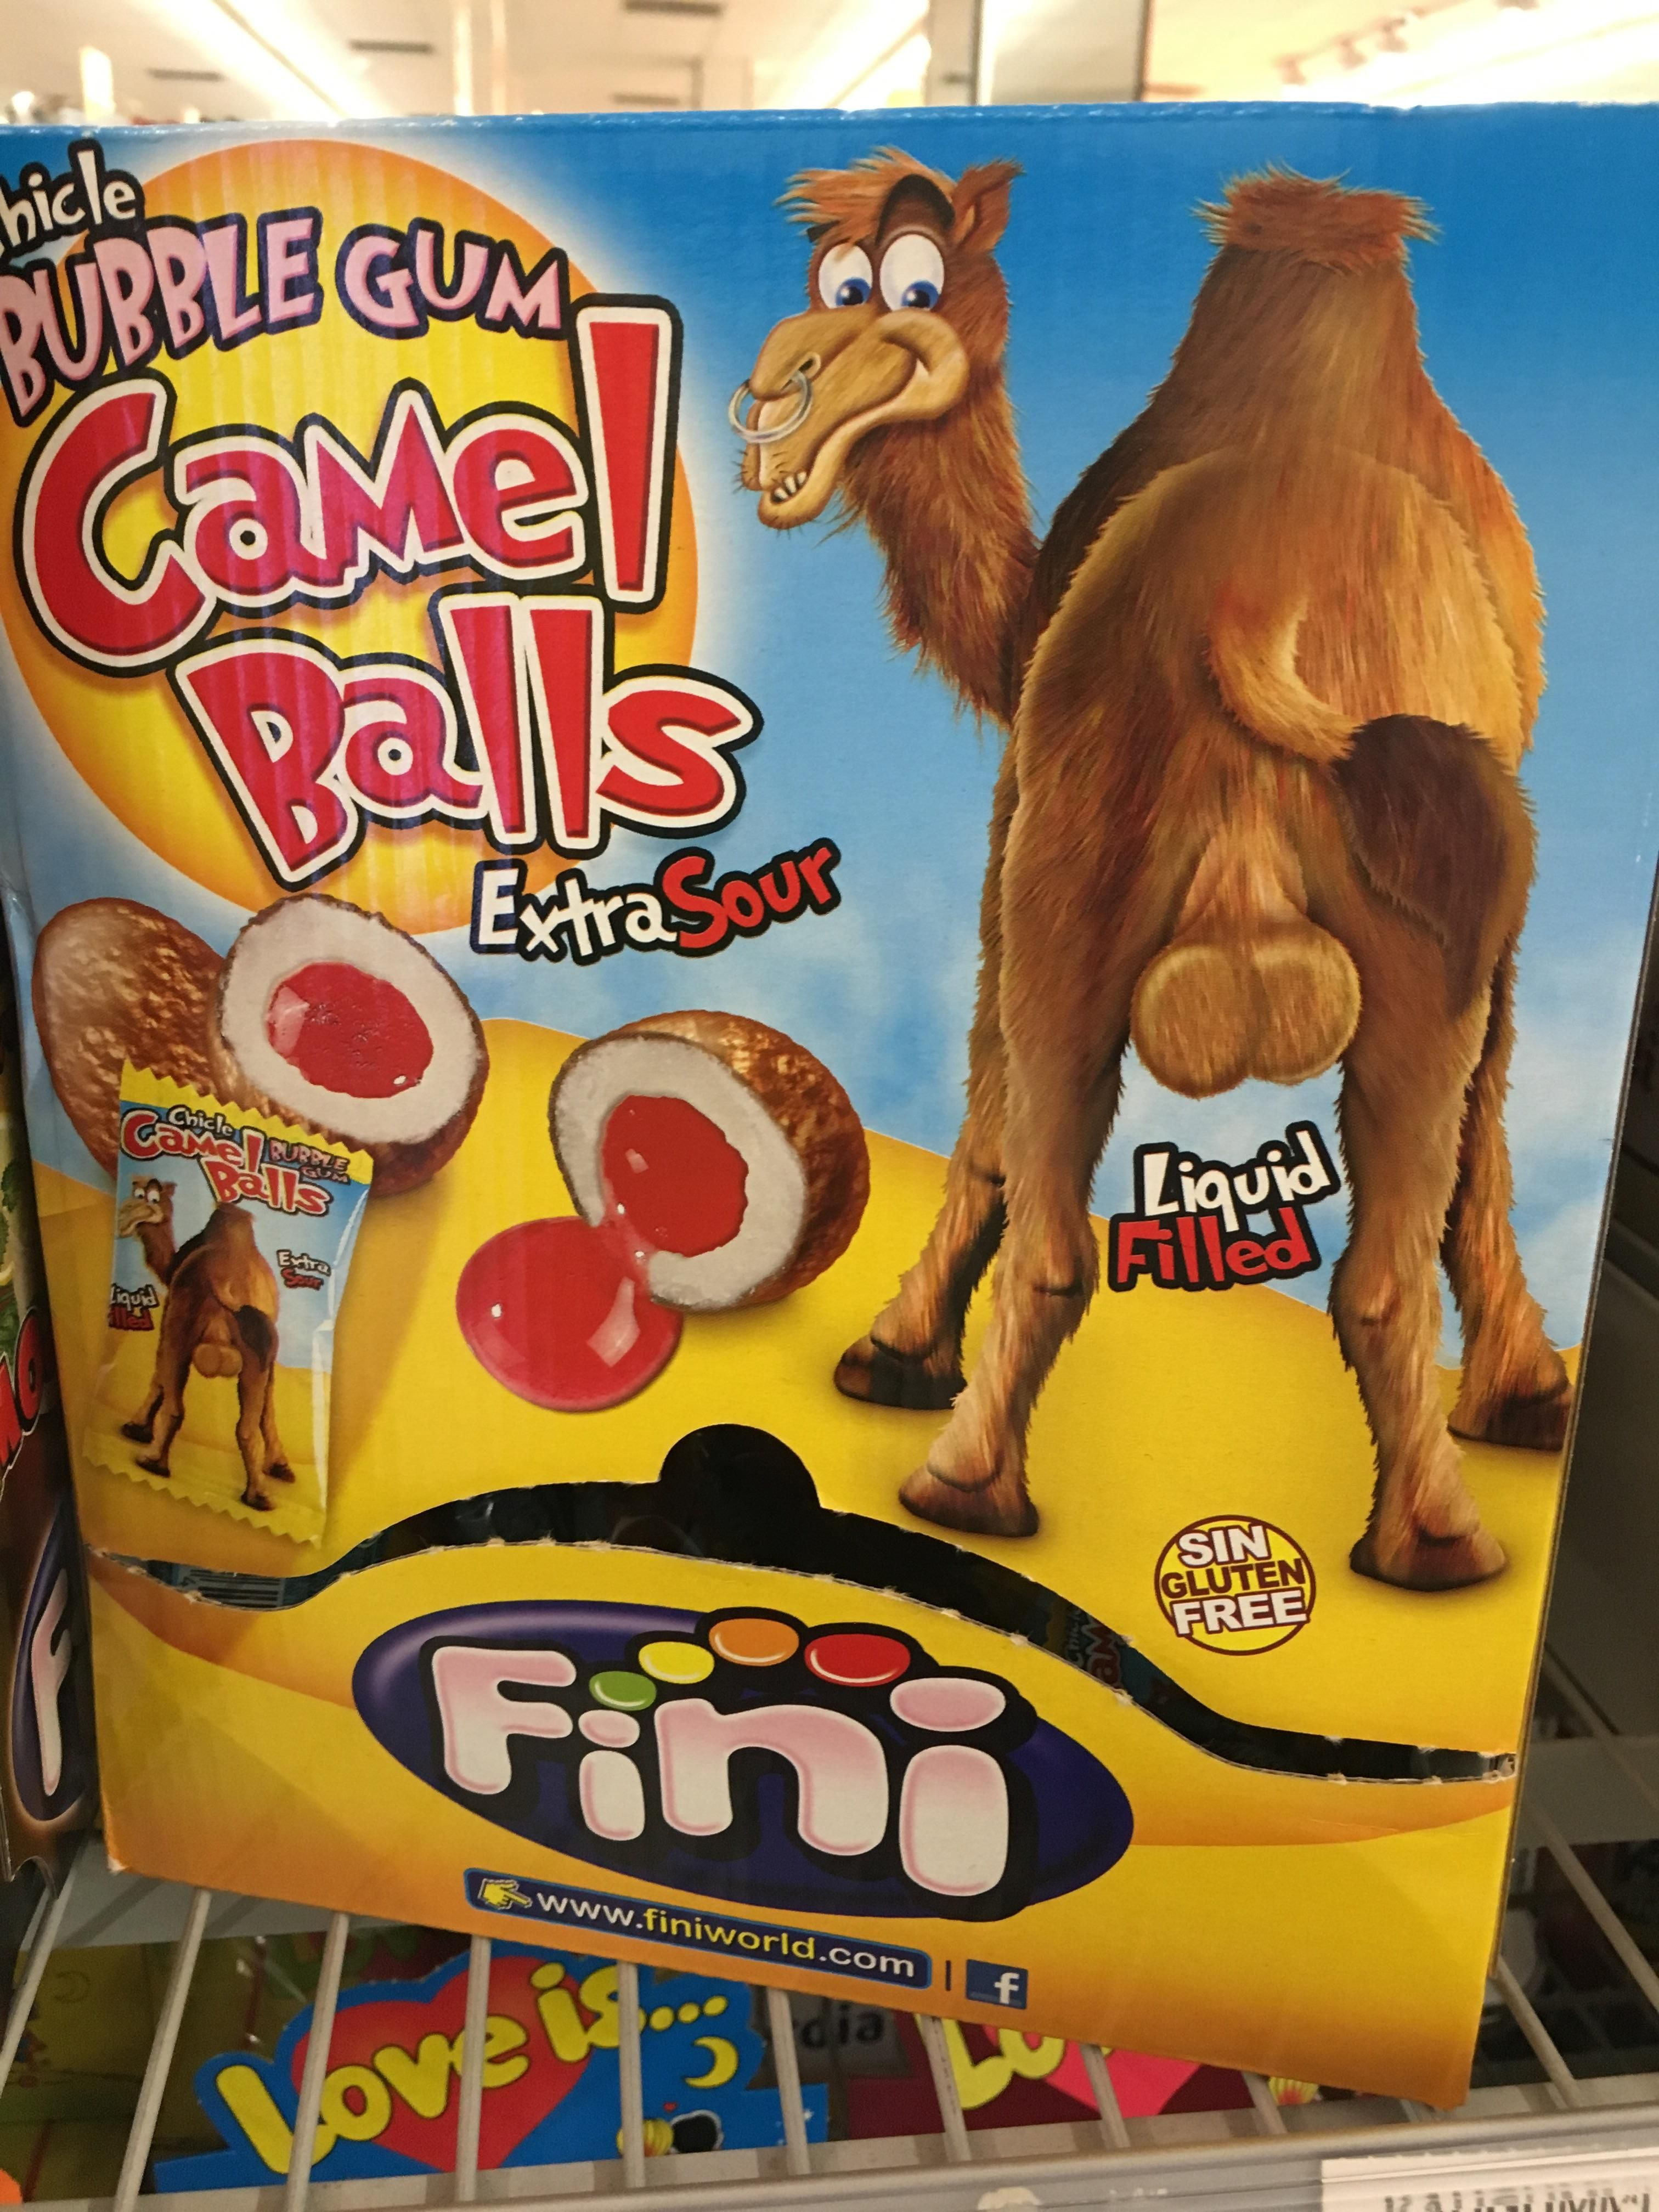 Who the hell thought it would be a good idea to market bubble gum as camel scrotums?